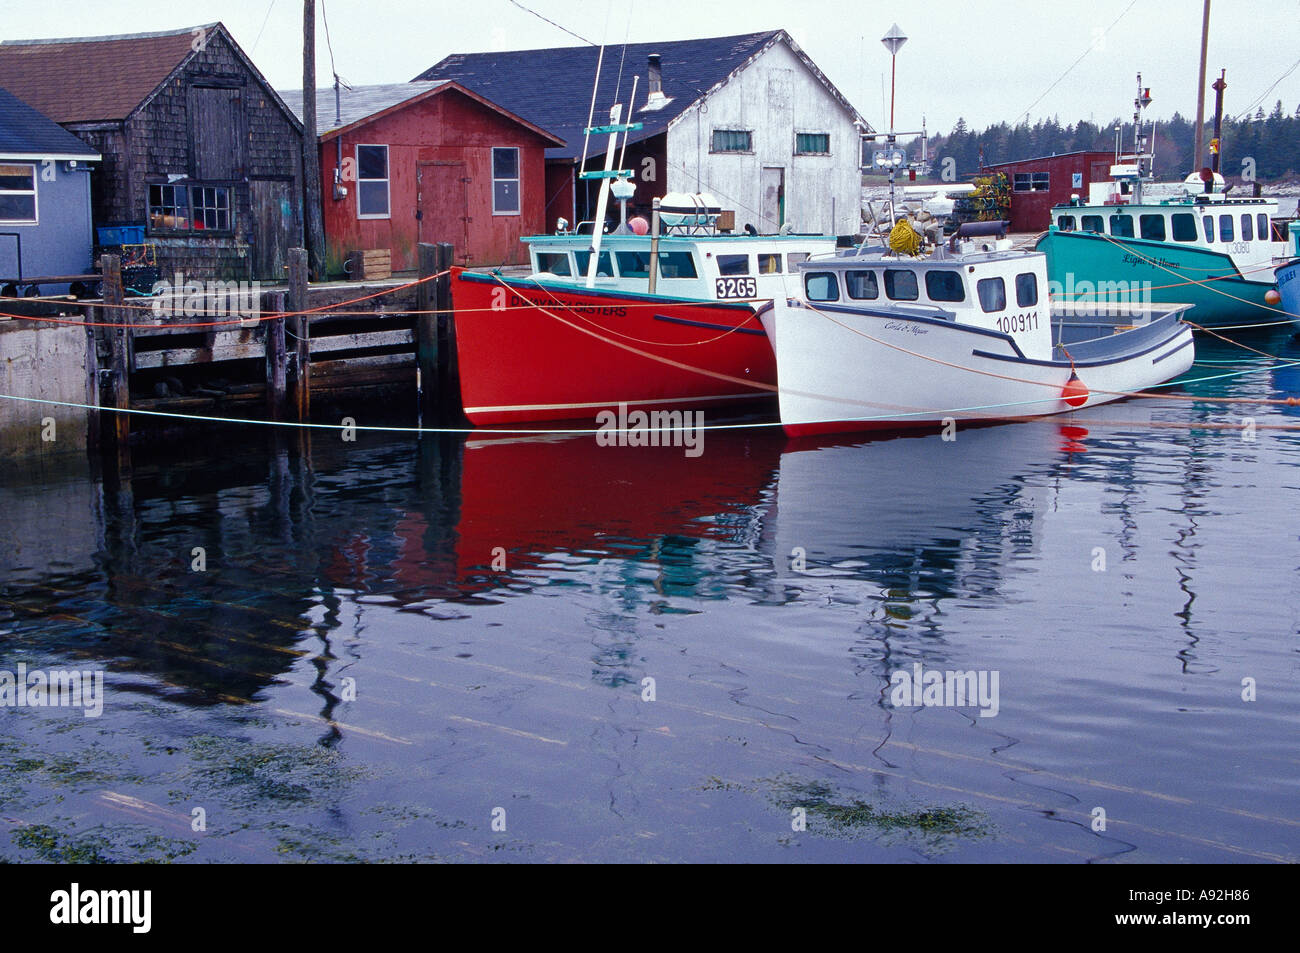 N.A. Canada, Nova Scotia, Hunts Point. Lobster boats at dock in Stock Photo: 3991941 - Alamy